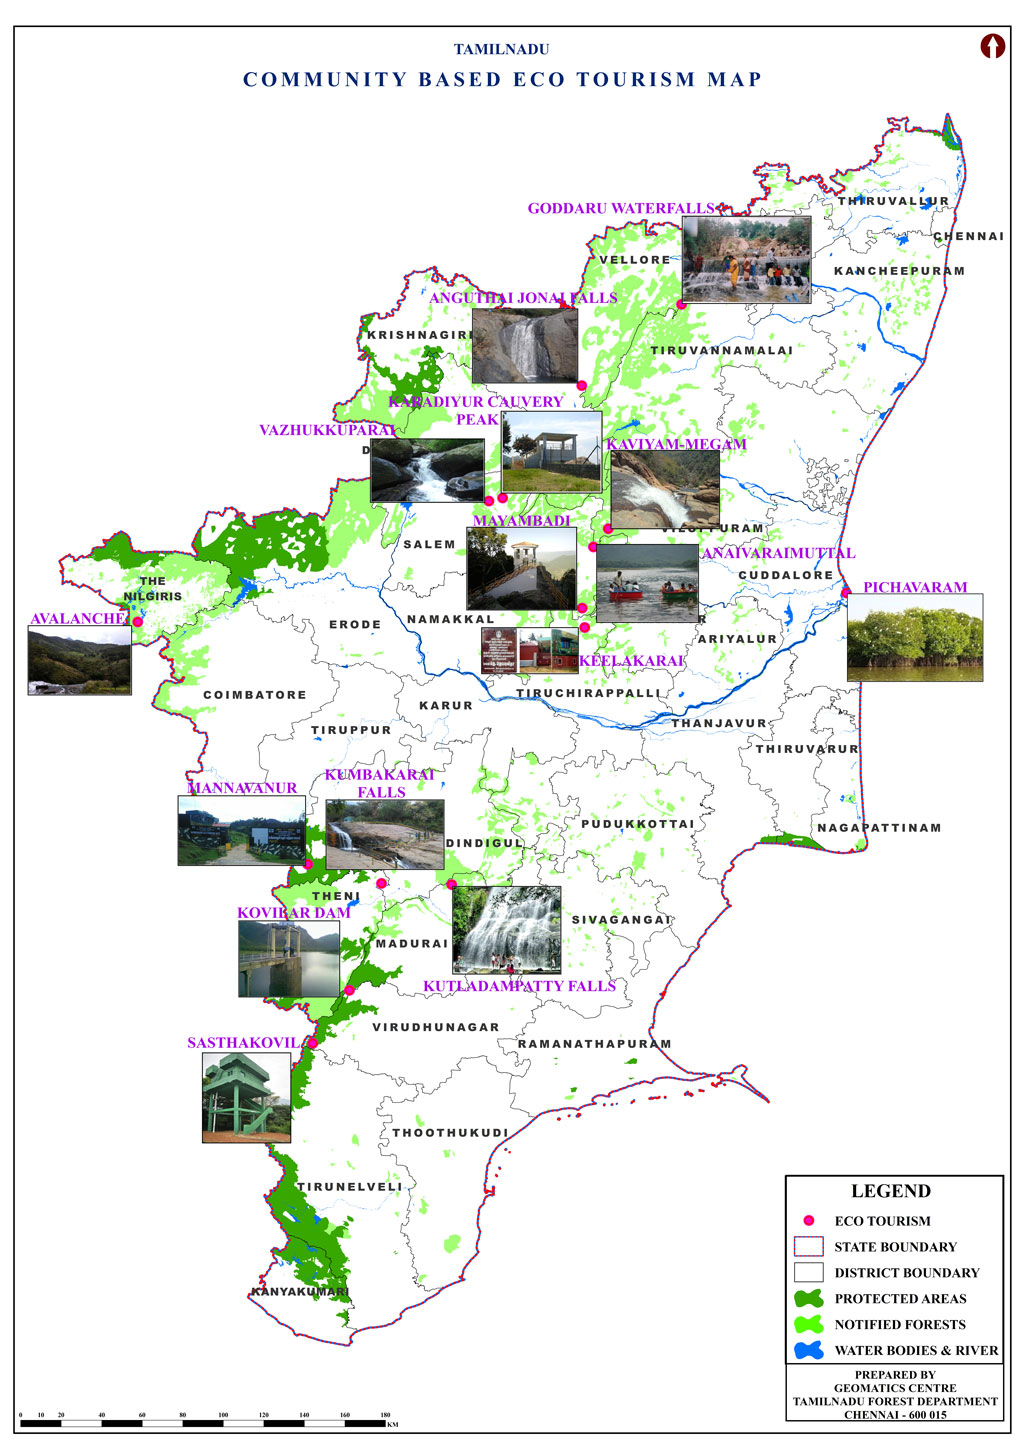 TNFOREST :: Tamil Nadu Forest Department